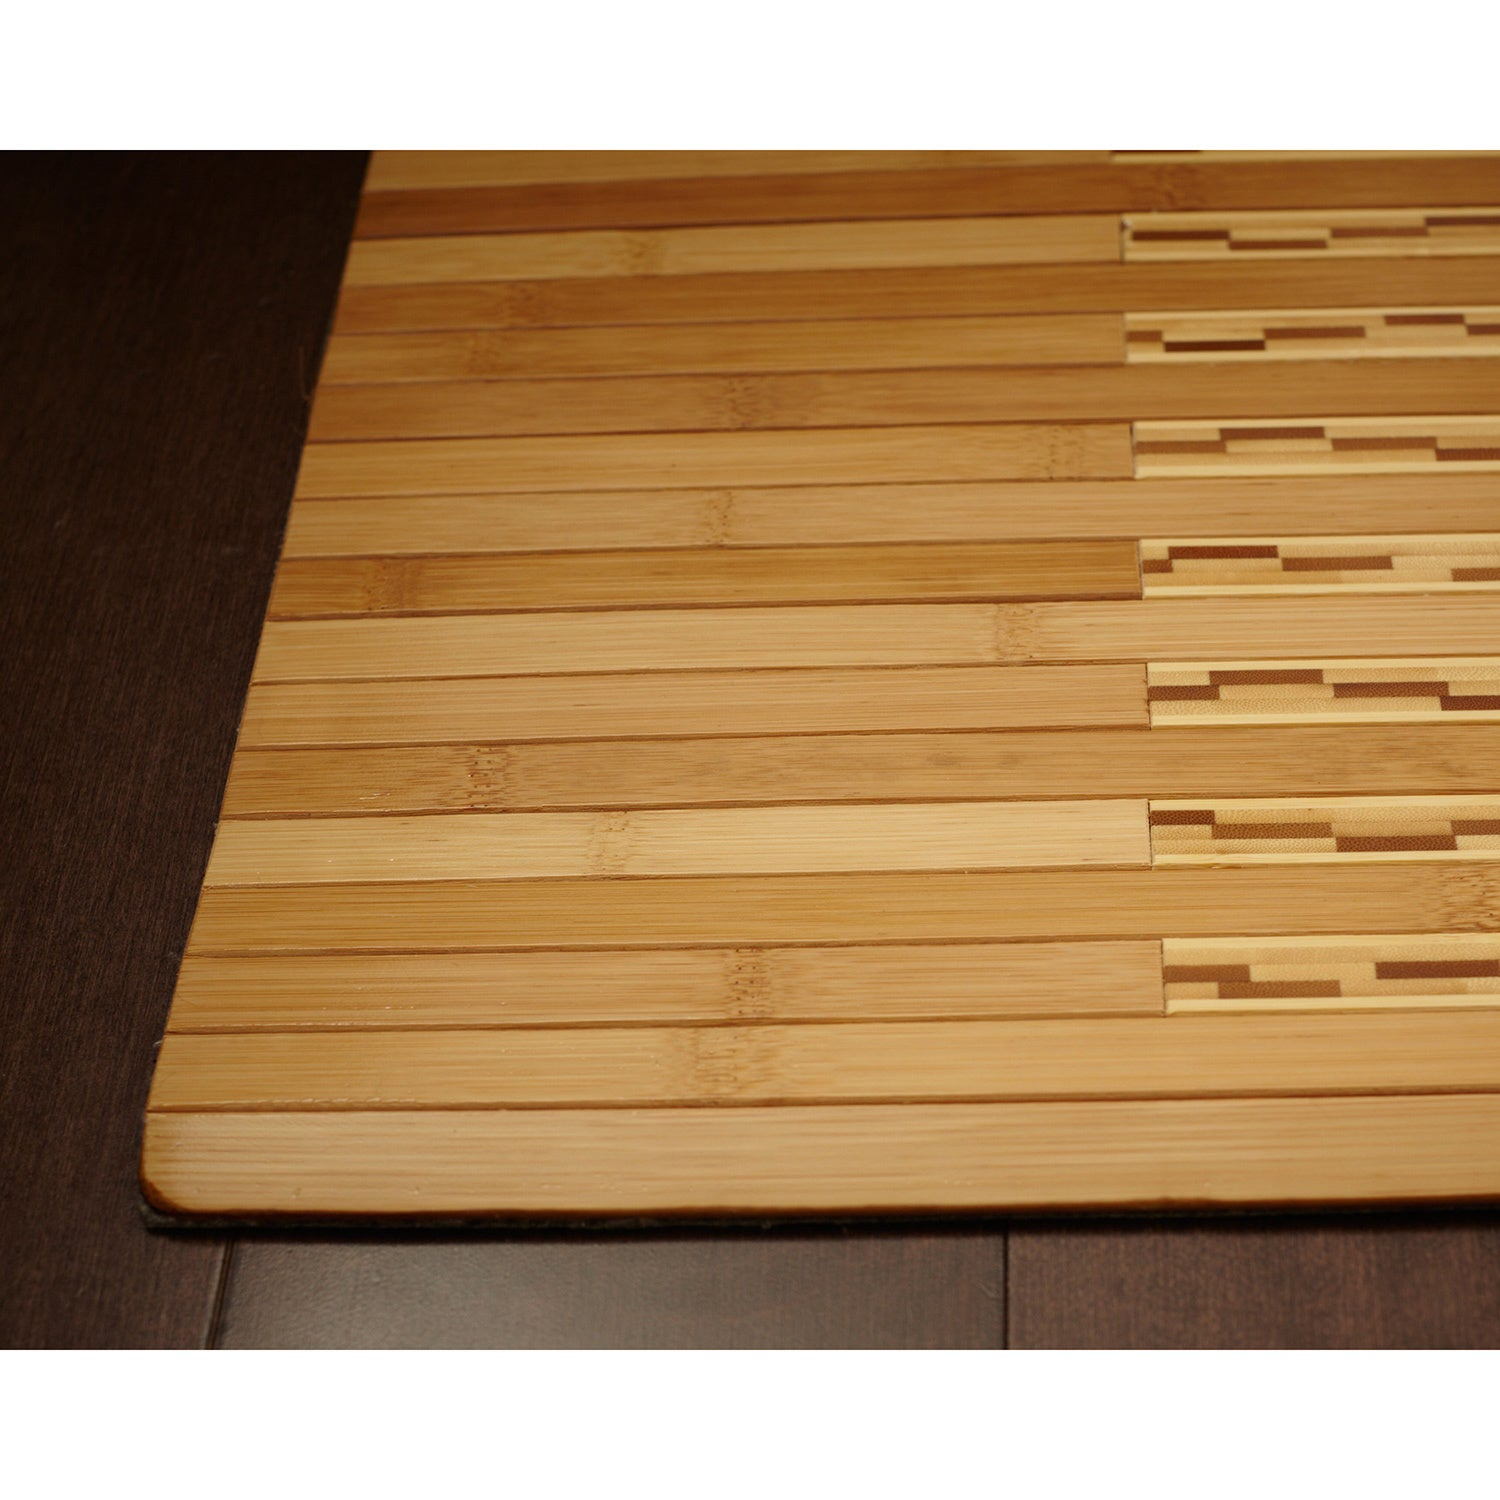 Jani Oolong Bamboo Mat 20 in x 48 in Free Shipping Today